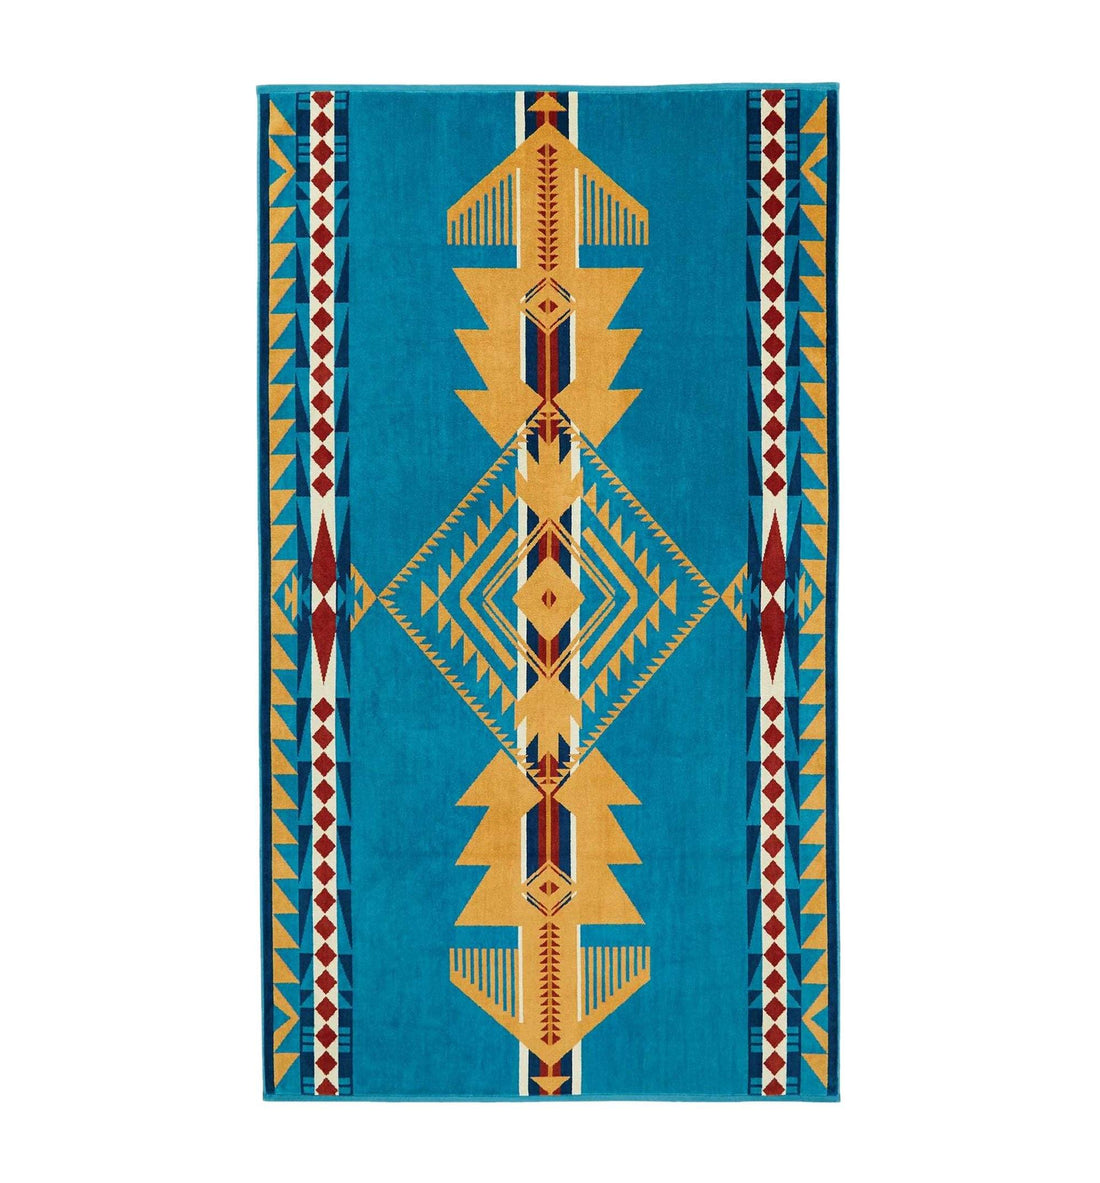 Pendleton Woolen Mills Oversized Jacquard Towel - Eagle Gift - Outdoor Living/Travel - Iron and Resin